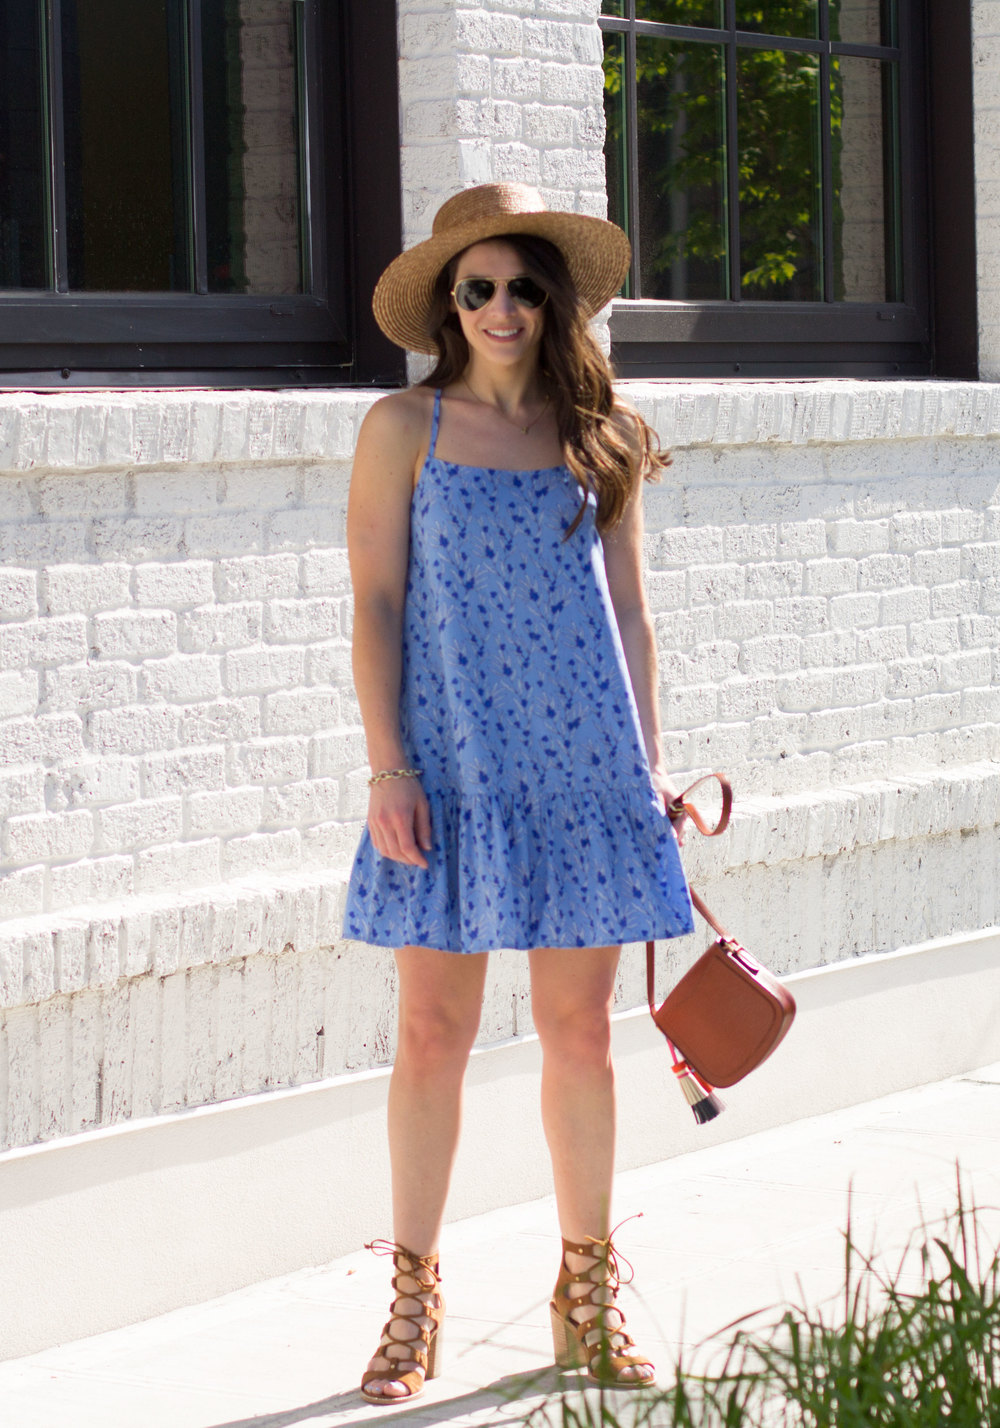 Effortless Summer Outfits, Easy Summer Dresses, Dolce Vita Lyndon Sandals, BB Dakota Veera Azul Dress, Boater Hat Outfit